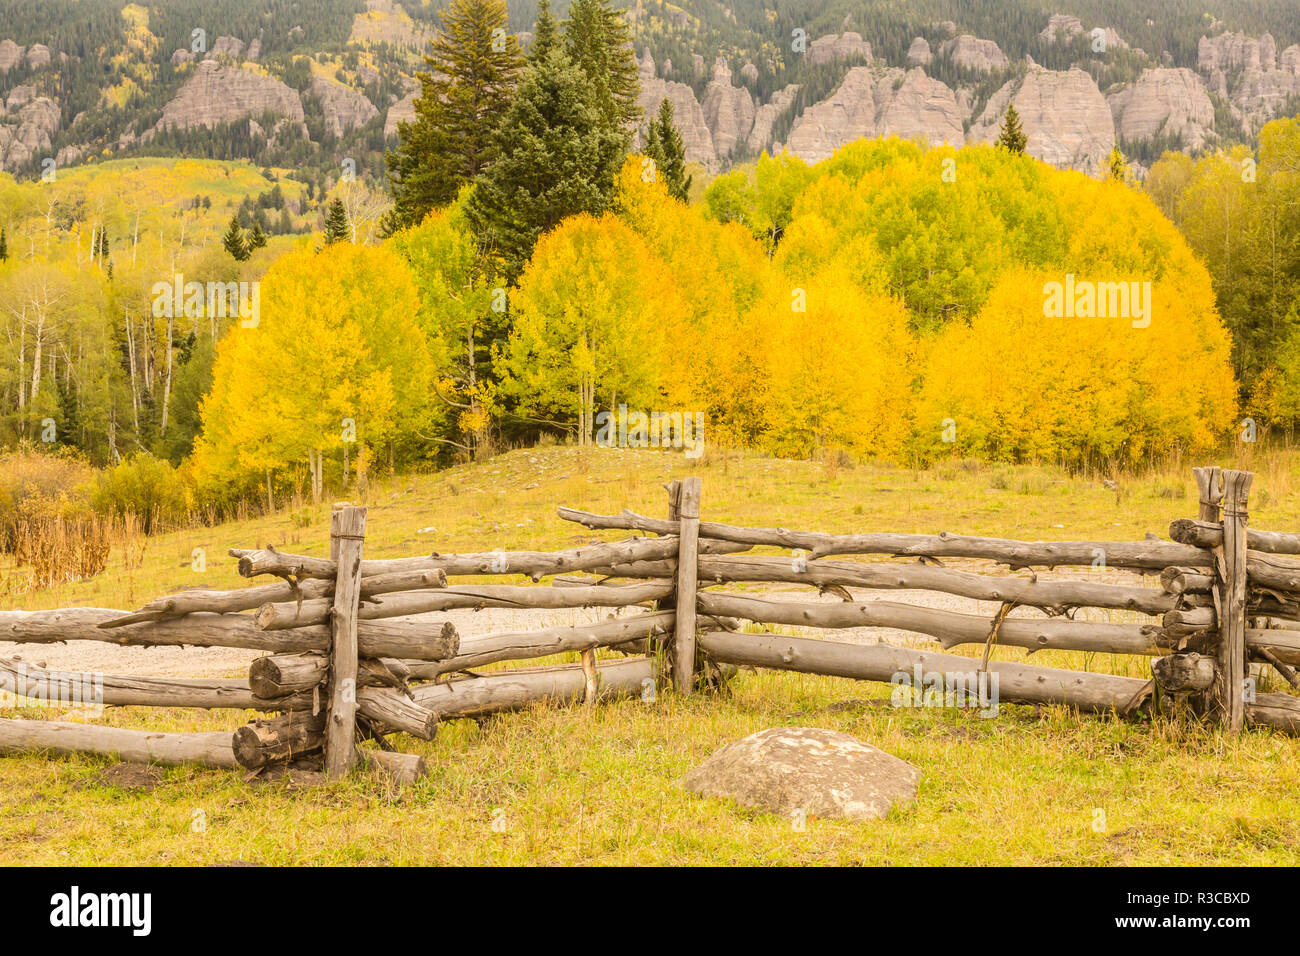 USA, Colorado, Gunnison National Forest. Split rail fence and trees in autumn color. - Stock Image